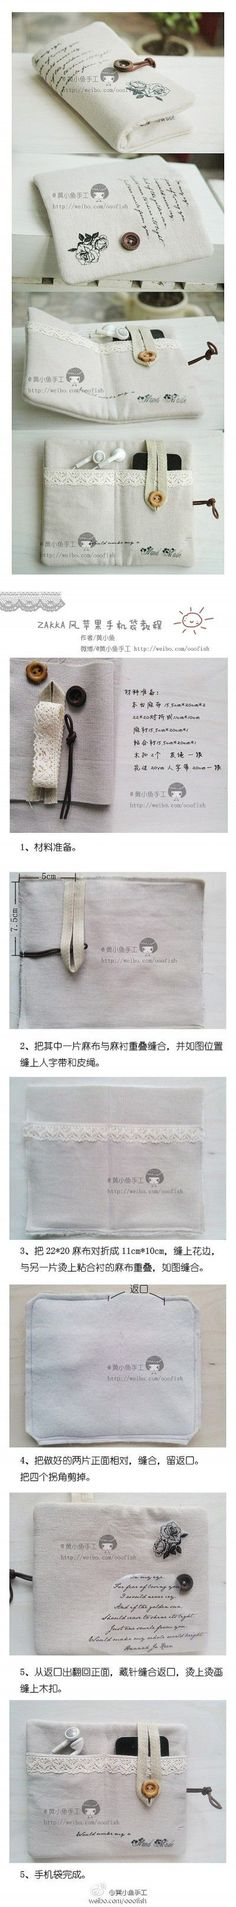 How to make your cool iphone bag step by step DIY tutorial instructions | How To Instructions: